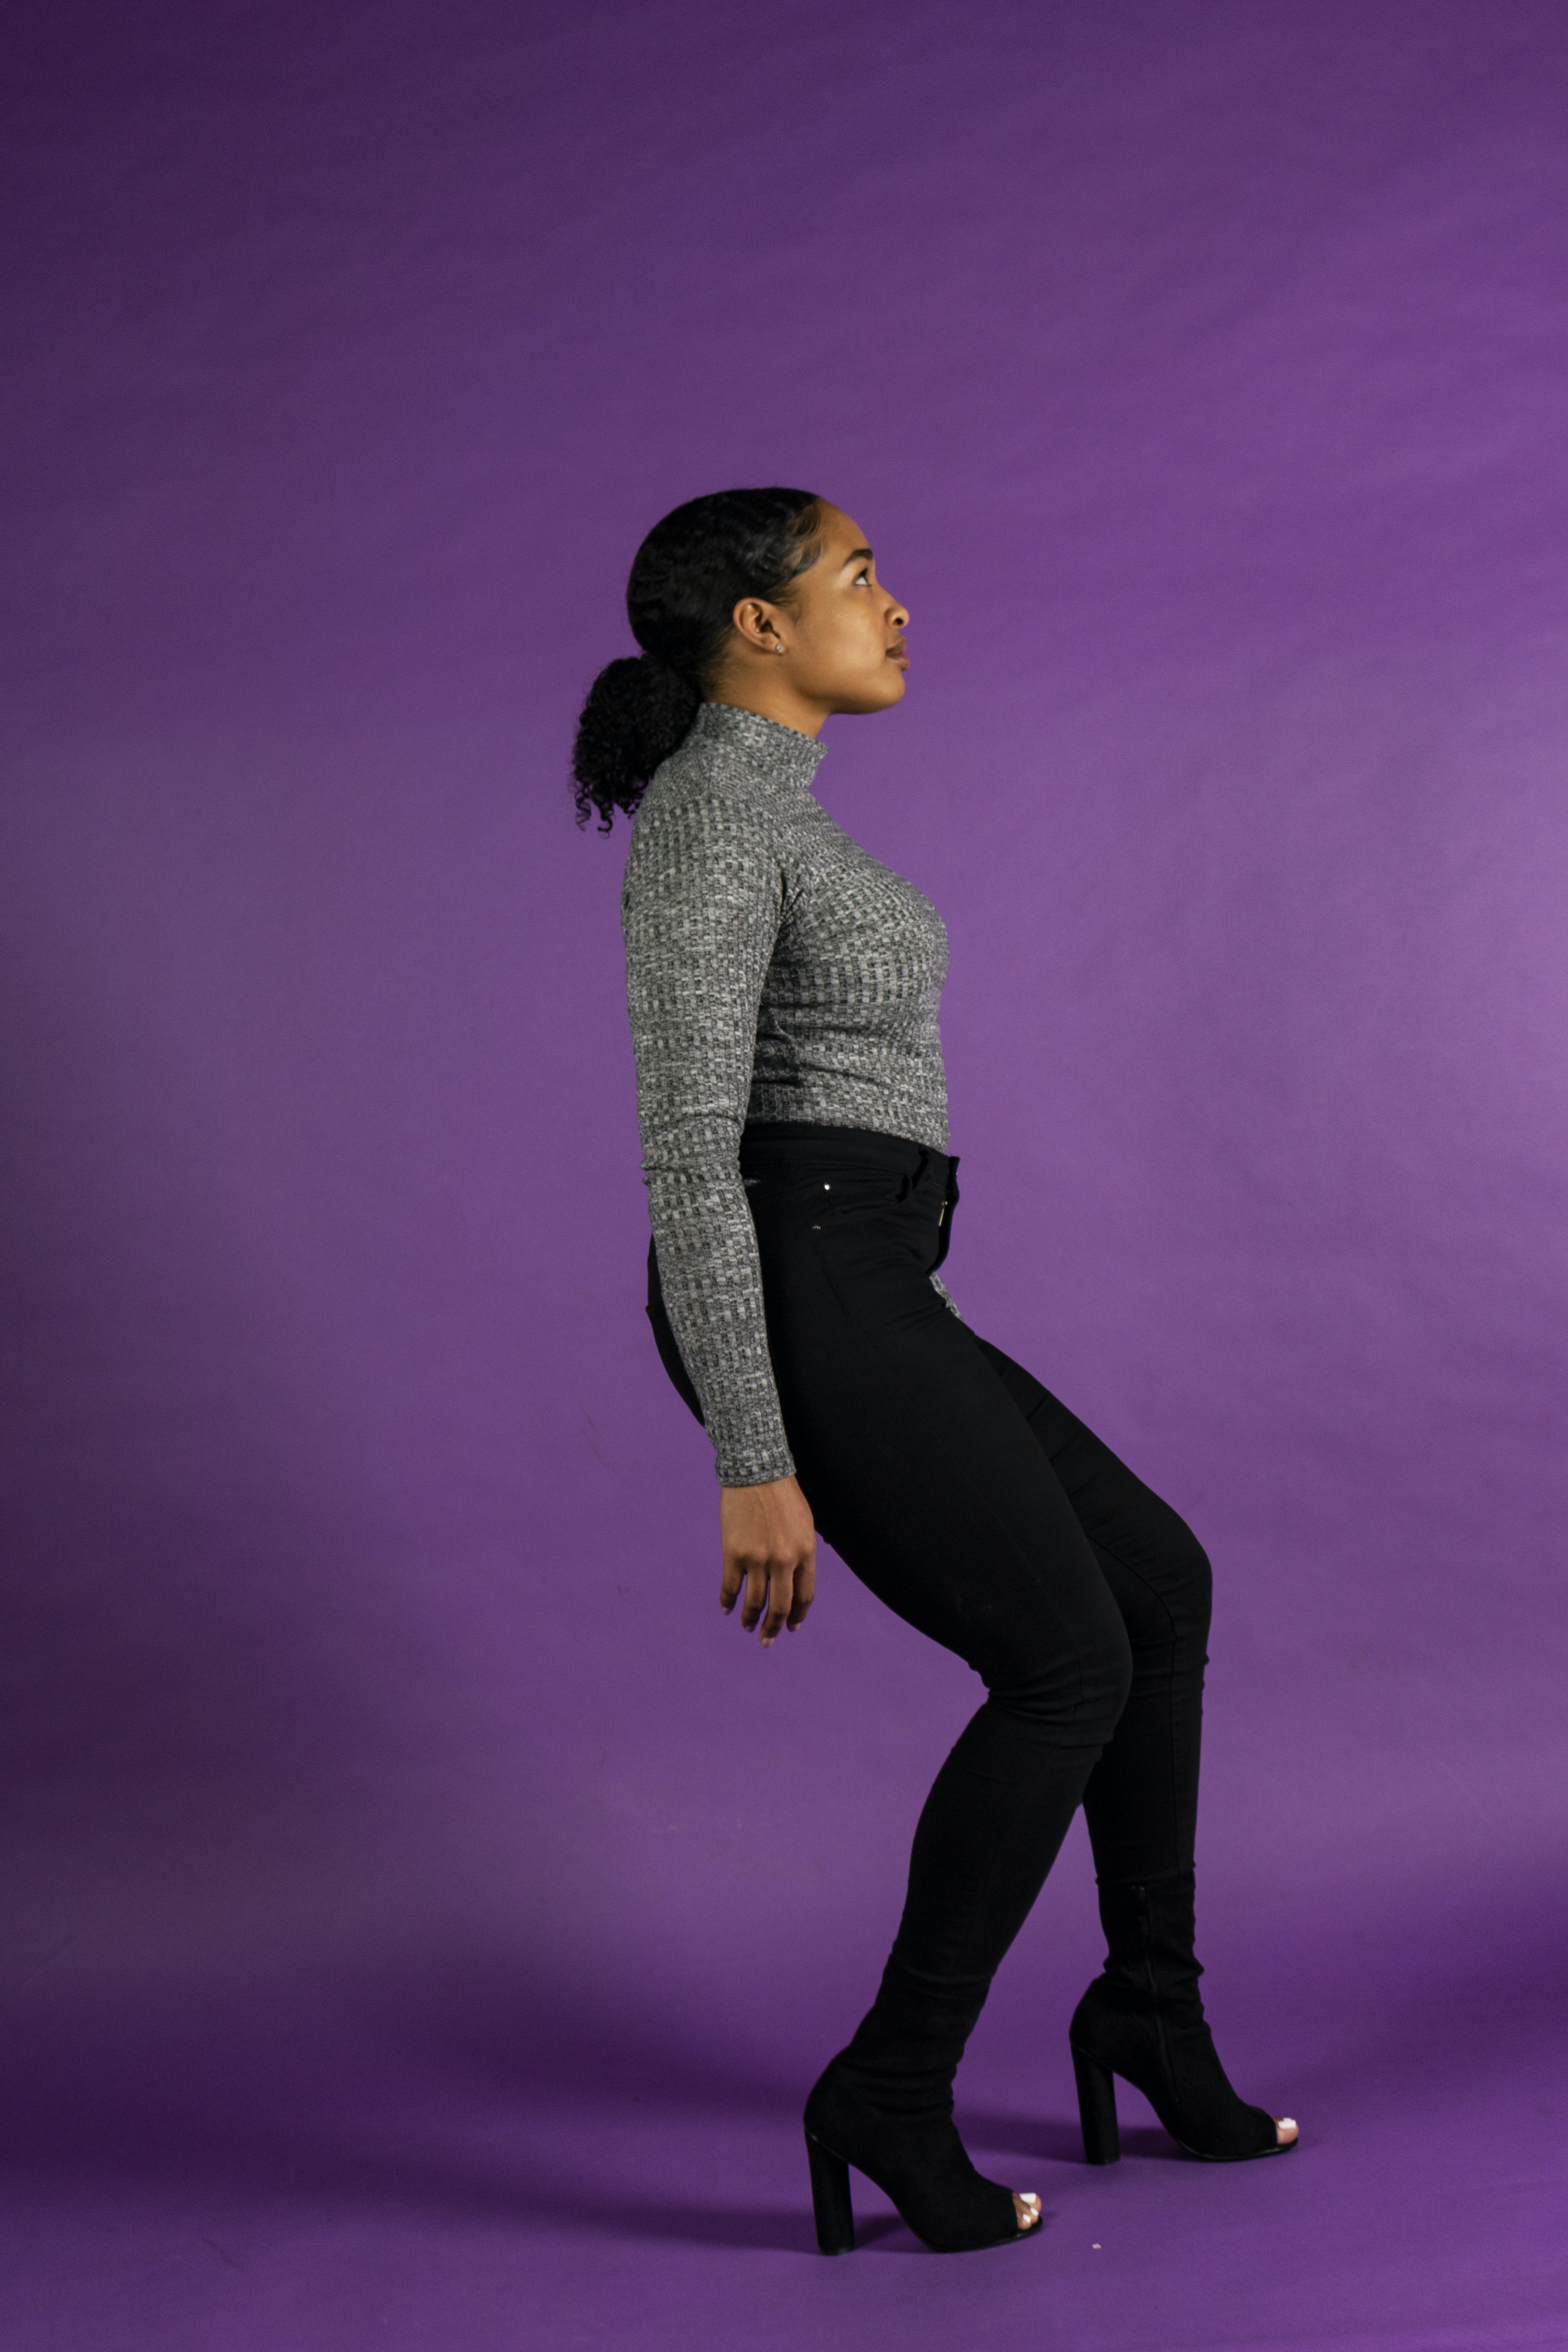 Woman in Grey Turtleneck and black Pants Posing